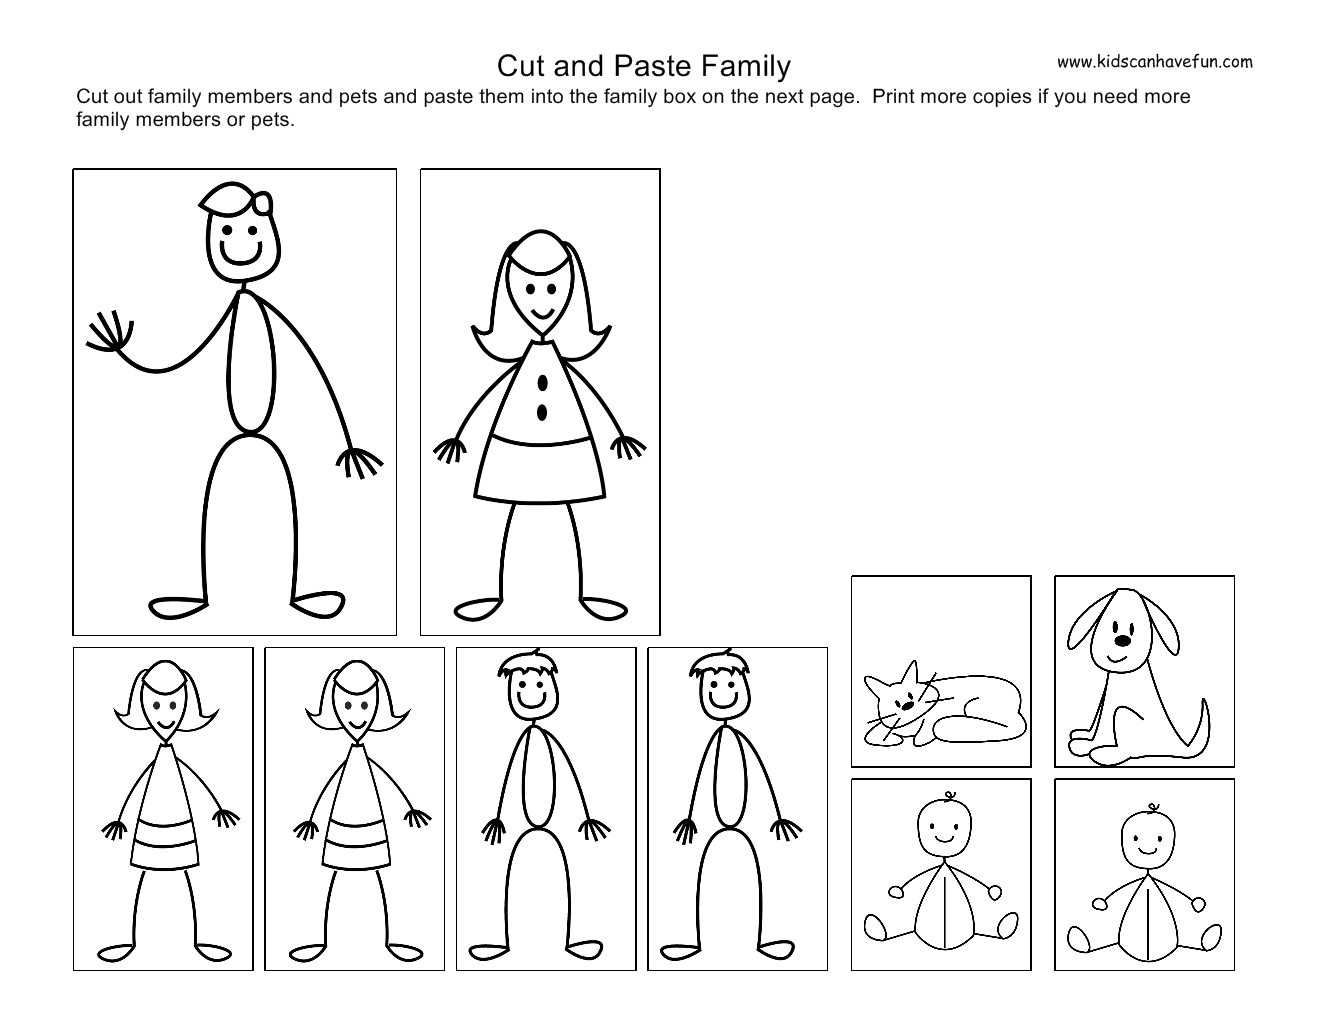 worksheet Cut And Paste Worksheet 1000 images about cut and paste worksheets activities for help the kids learn school before their first day or when returning back to with worksheets